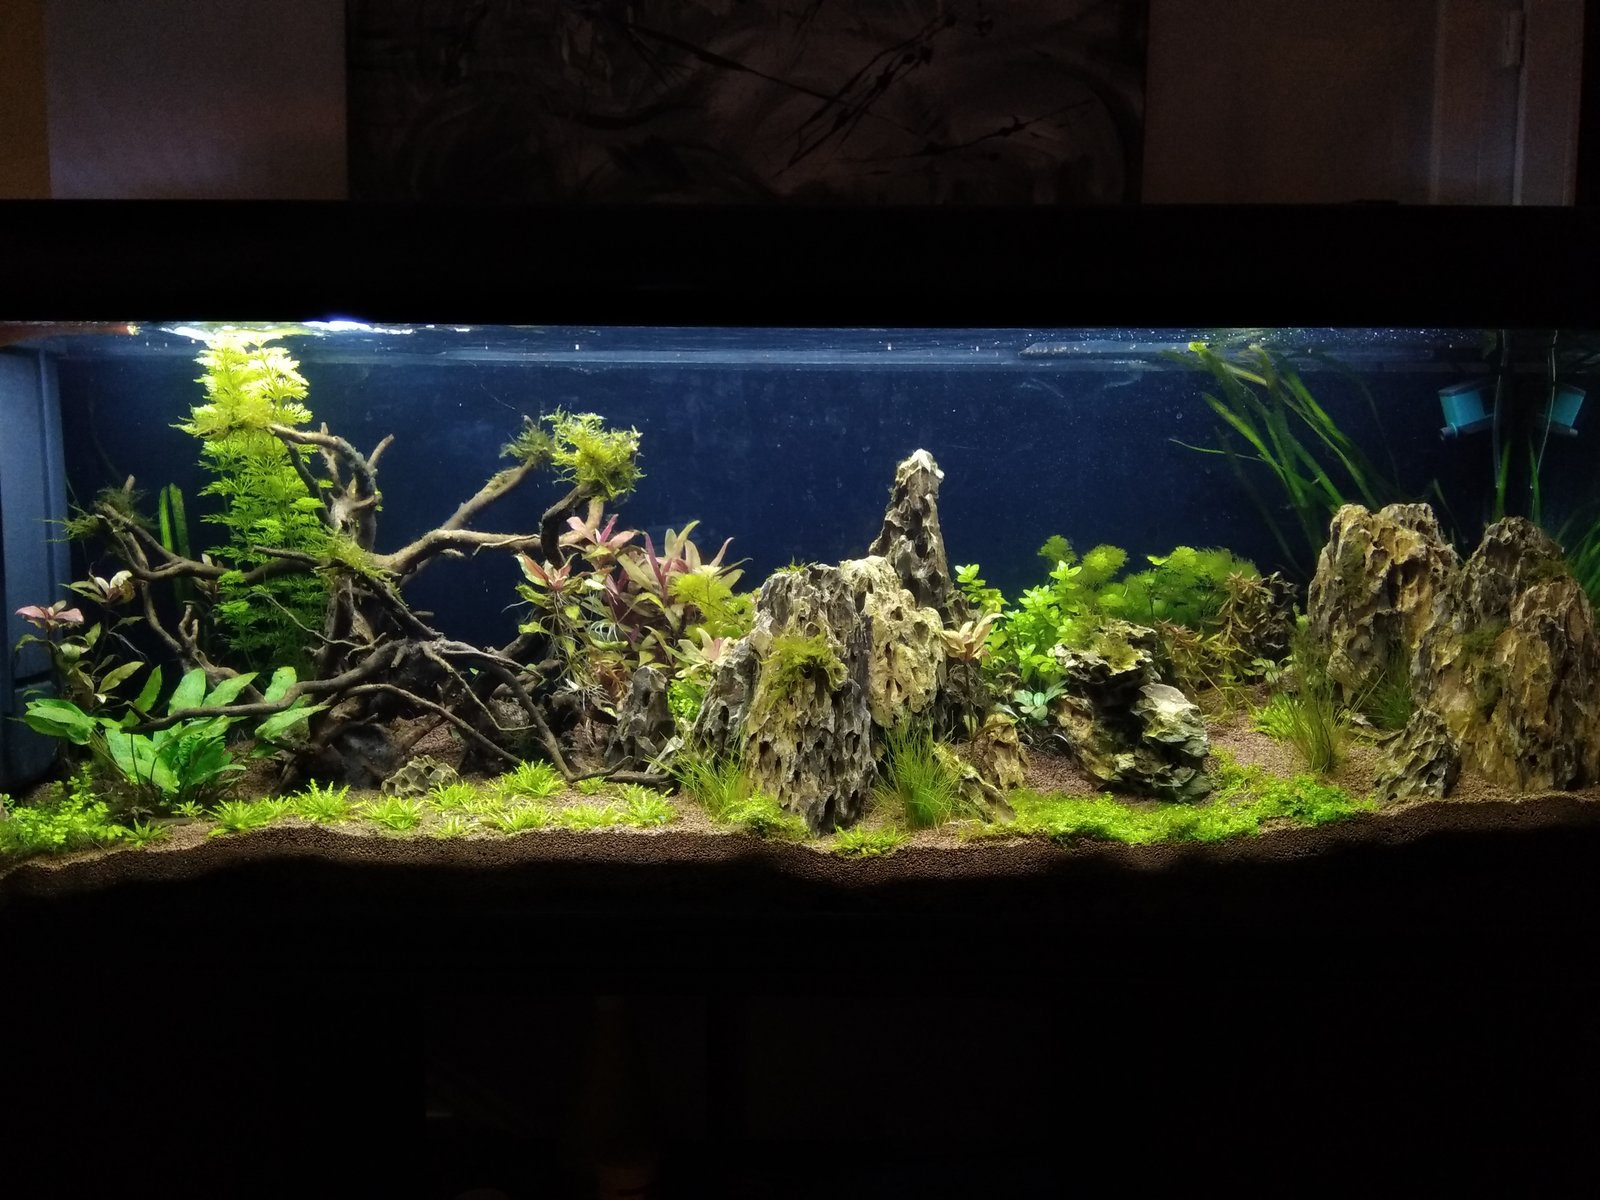 300l brut aquascaping - Page 2 191205080009219217